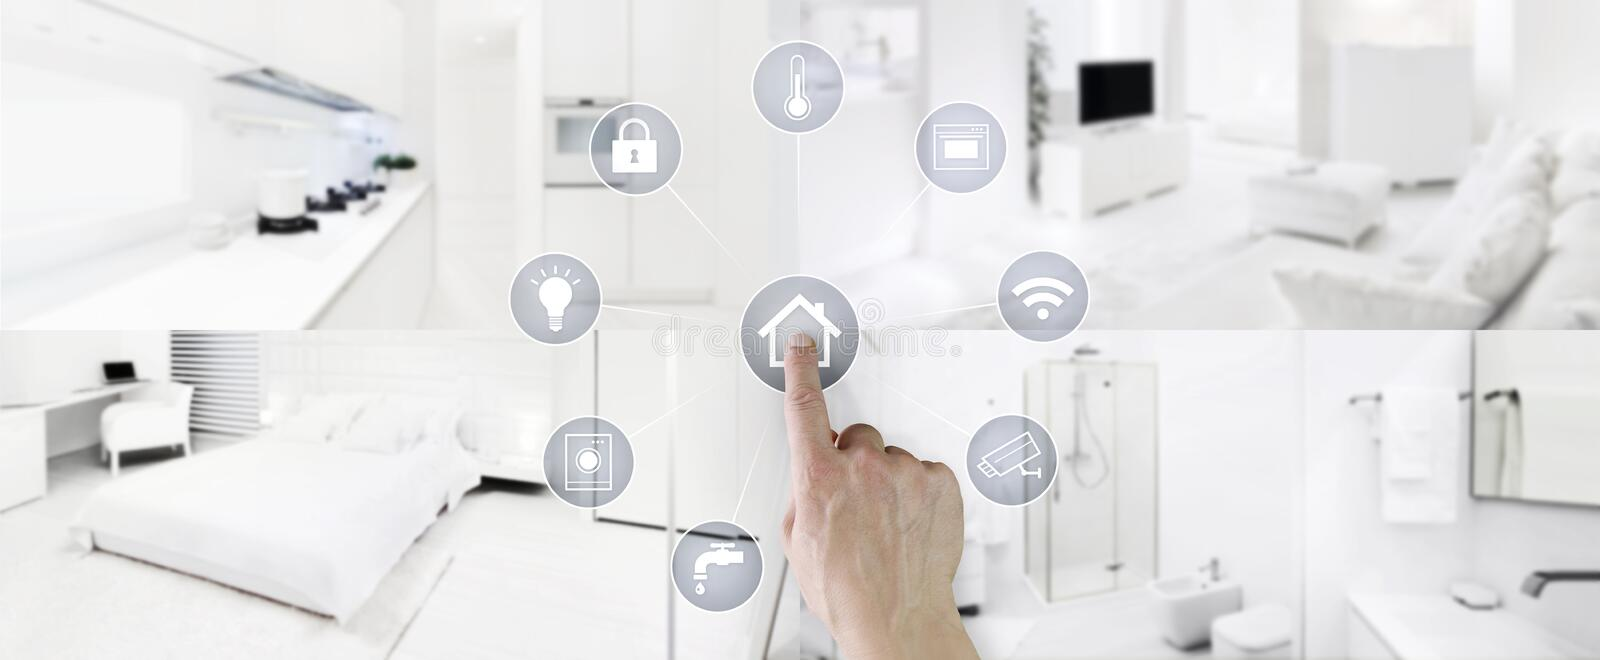 Smart home control concept hand touch icons screen with interiors, living room, kitchen, bedroom and bathroom on blurred. Smart home control concept hand icons royalty free stock photos